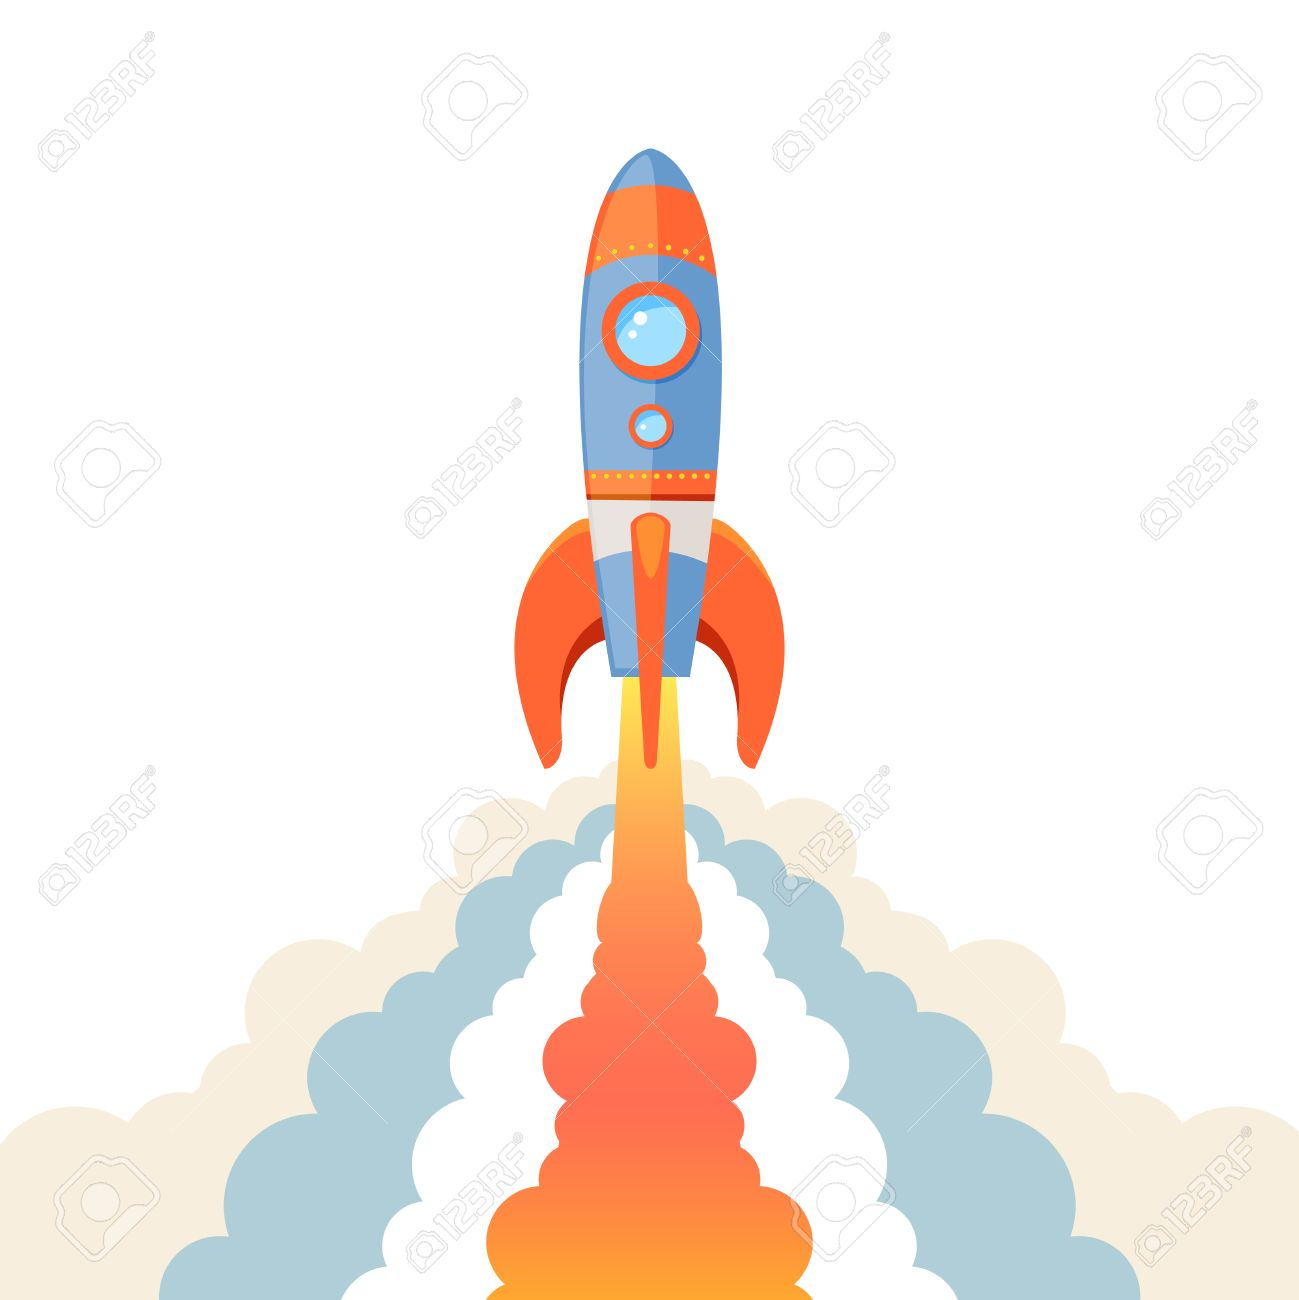 Rocket clipart takeoff #5